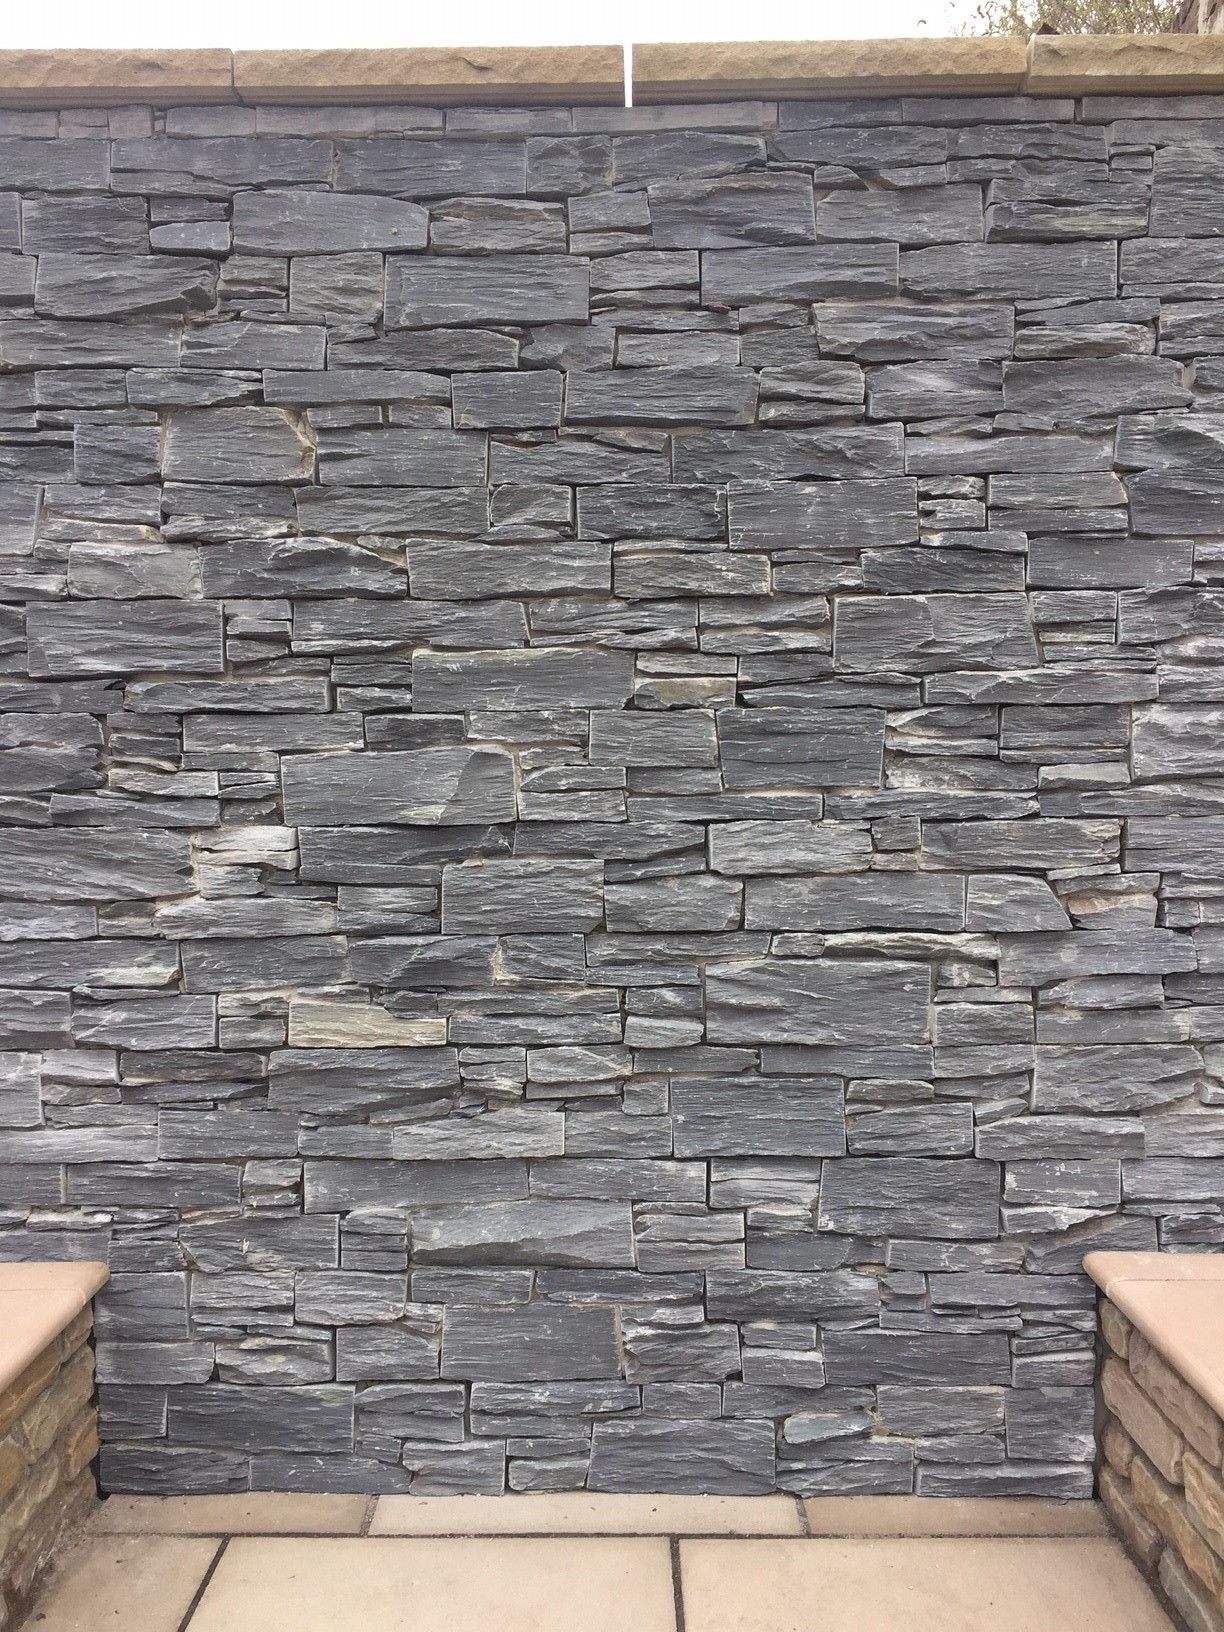 Airstone Home Depot Airstone Tile Artificial Brick Siding Artificial Brick Stone Artificial Exterior Stone Siding Panels Faux Stone Veneer Stone Veneer Panels